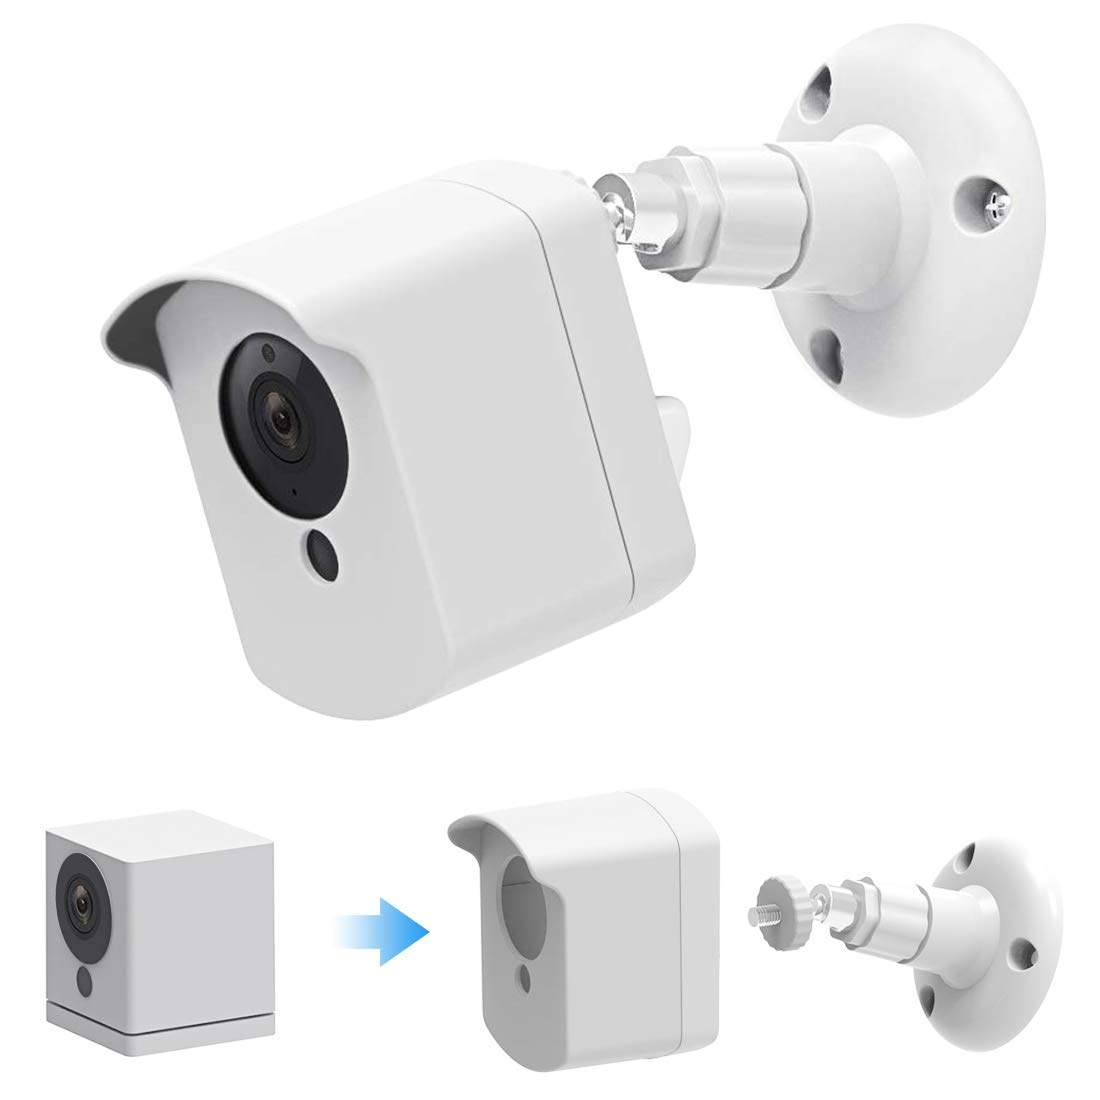 Wyze Cam Wall Mount Bracket. Caremoo Upgraded Weather Proof Case with Adjustable Security Mount for Wyze Cam V2 V1 and Ismart Spot Camera Indoor Outdoor Use (White)